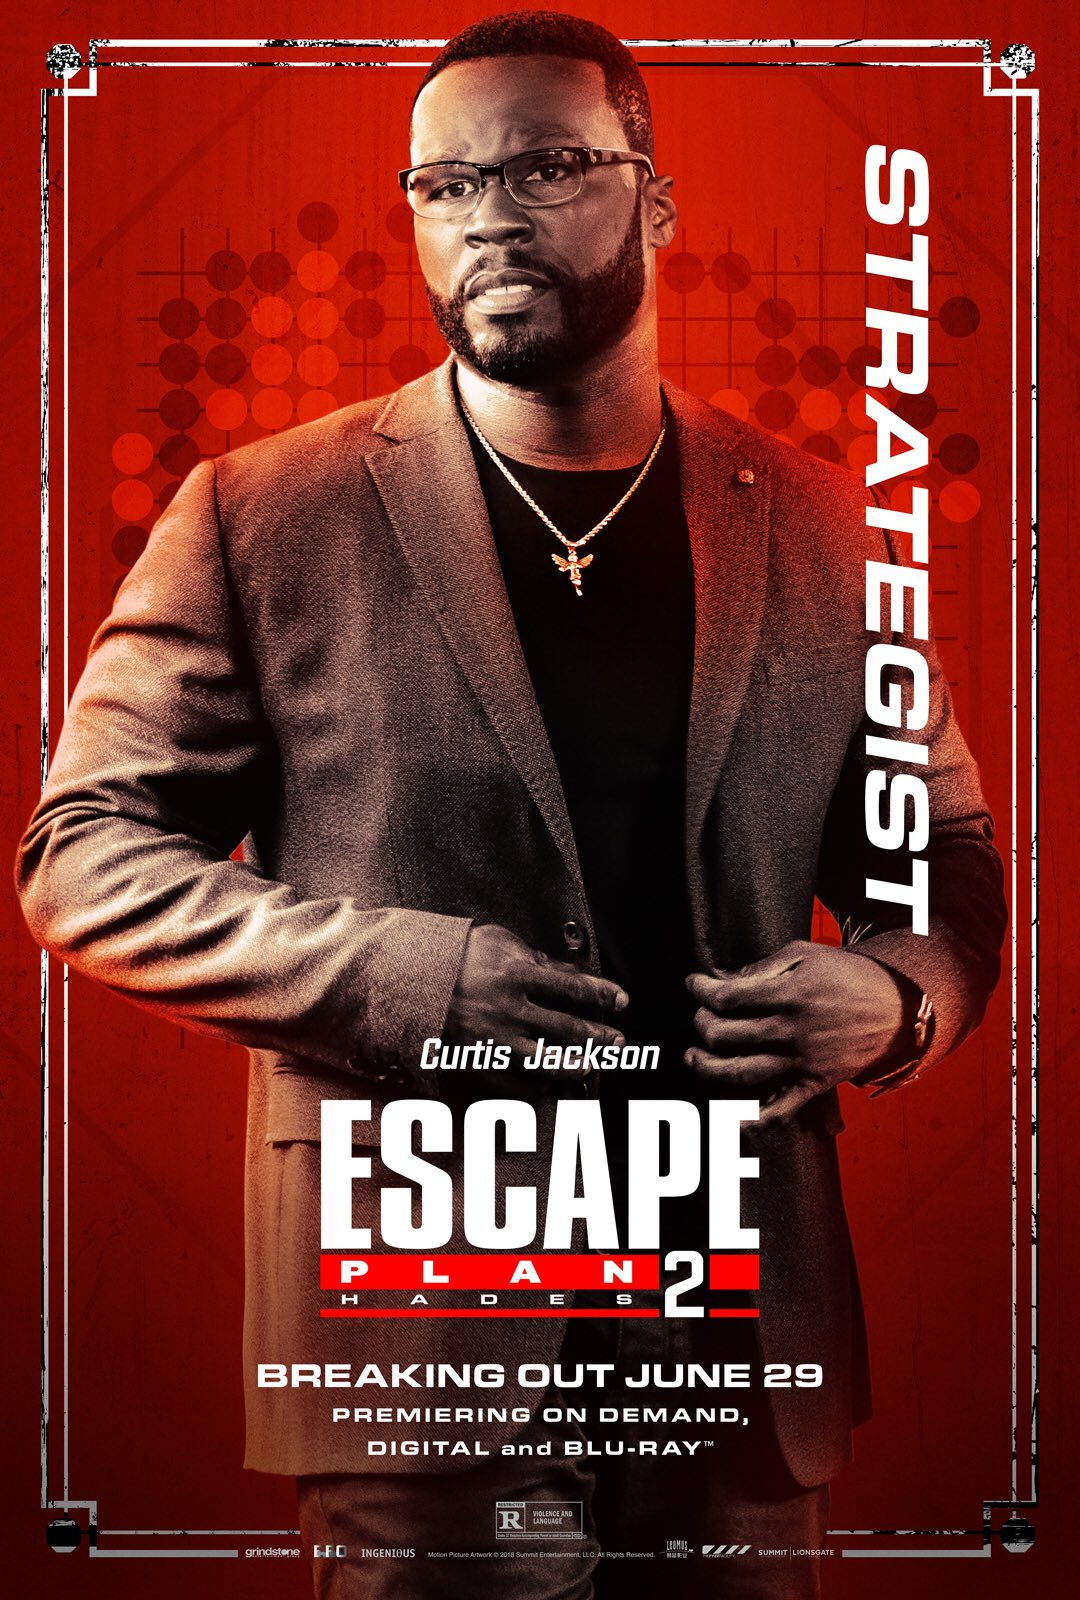 Check this out Escape plan 2 we lit��#lecheminduroi #power https://t.co/HYz3PuYJlU